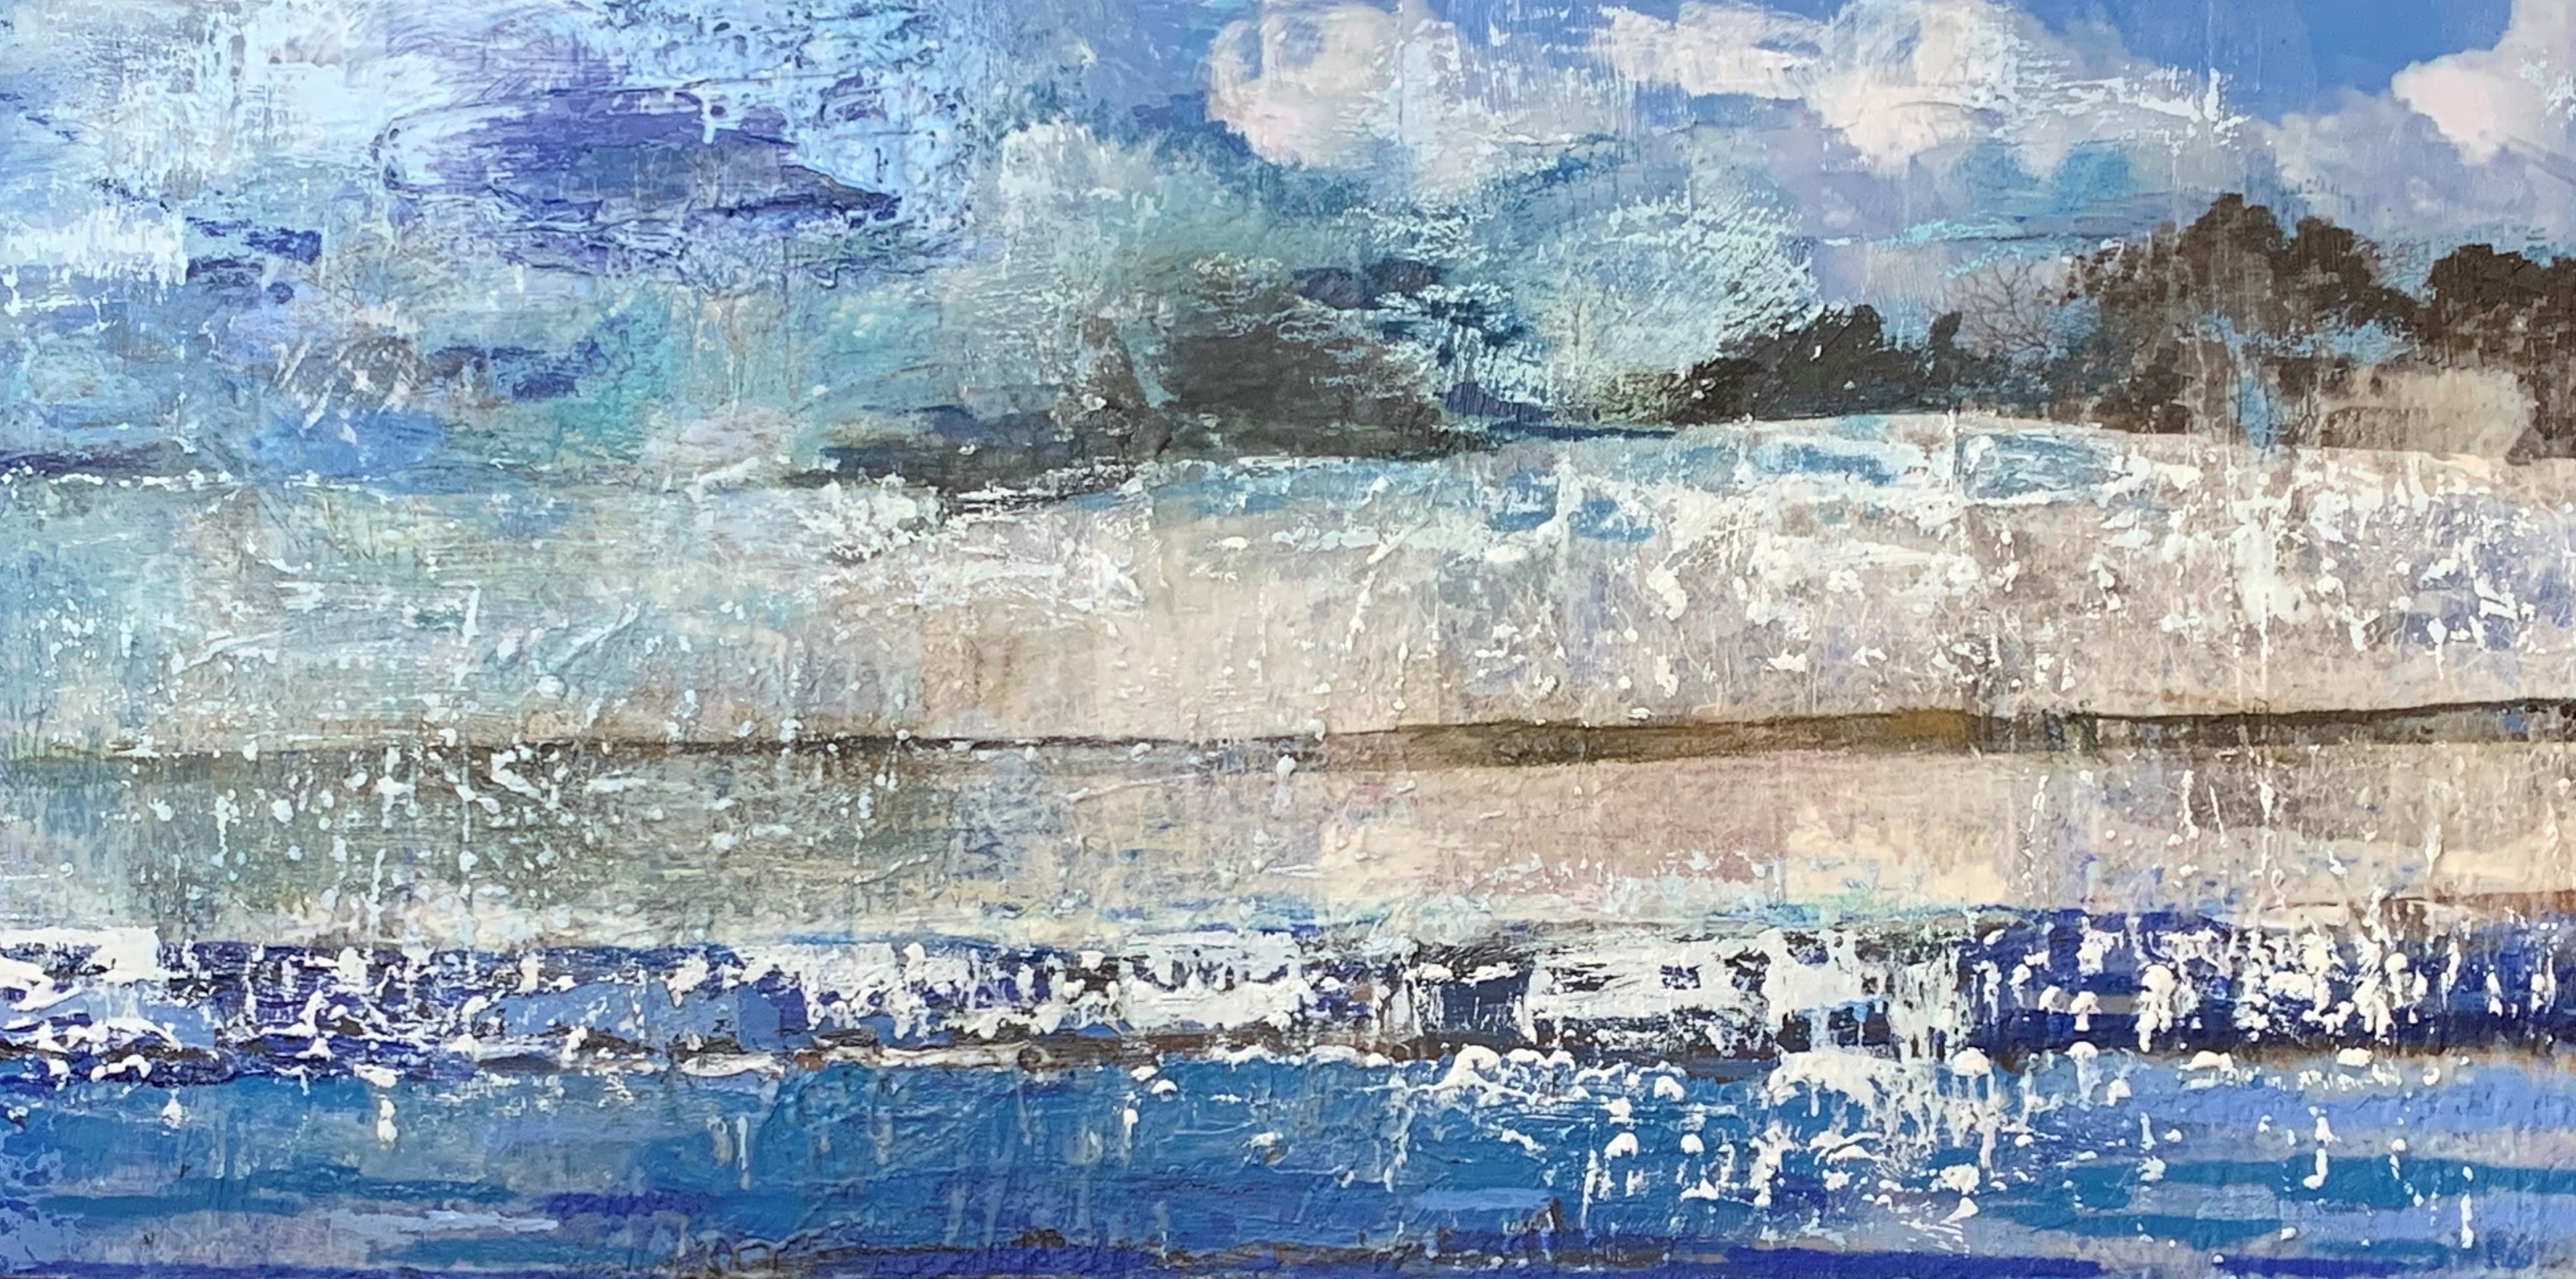 Williams_Harbor Island 48 inches by 24 inches Encaustic with Mixed Media